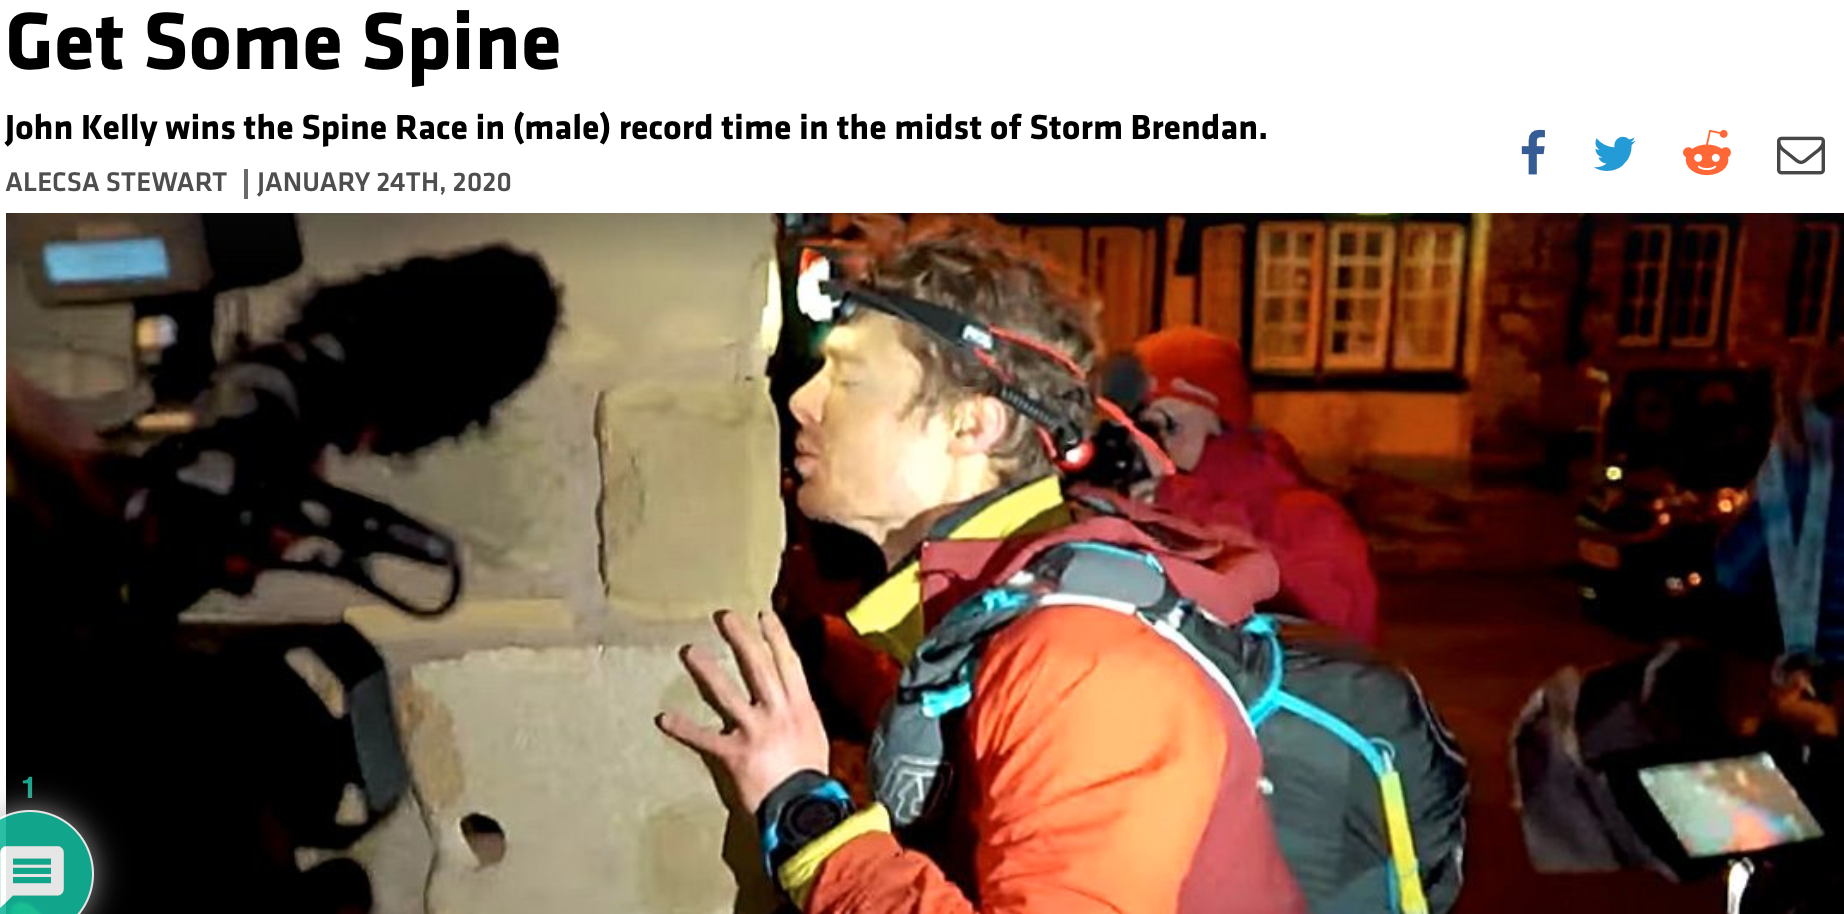 Trail Runner Mag News: John Kelly winning the Spine Race 2020